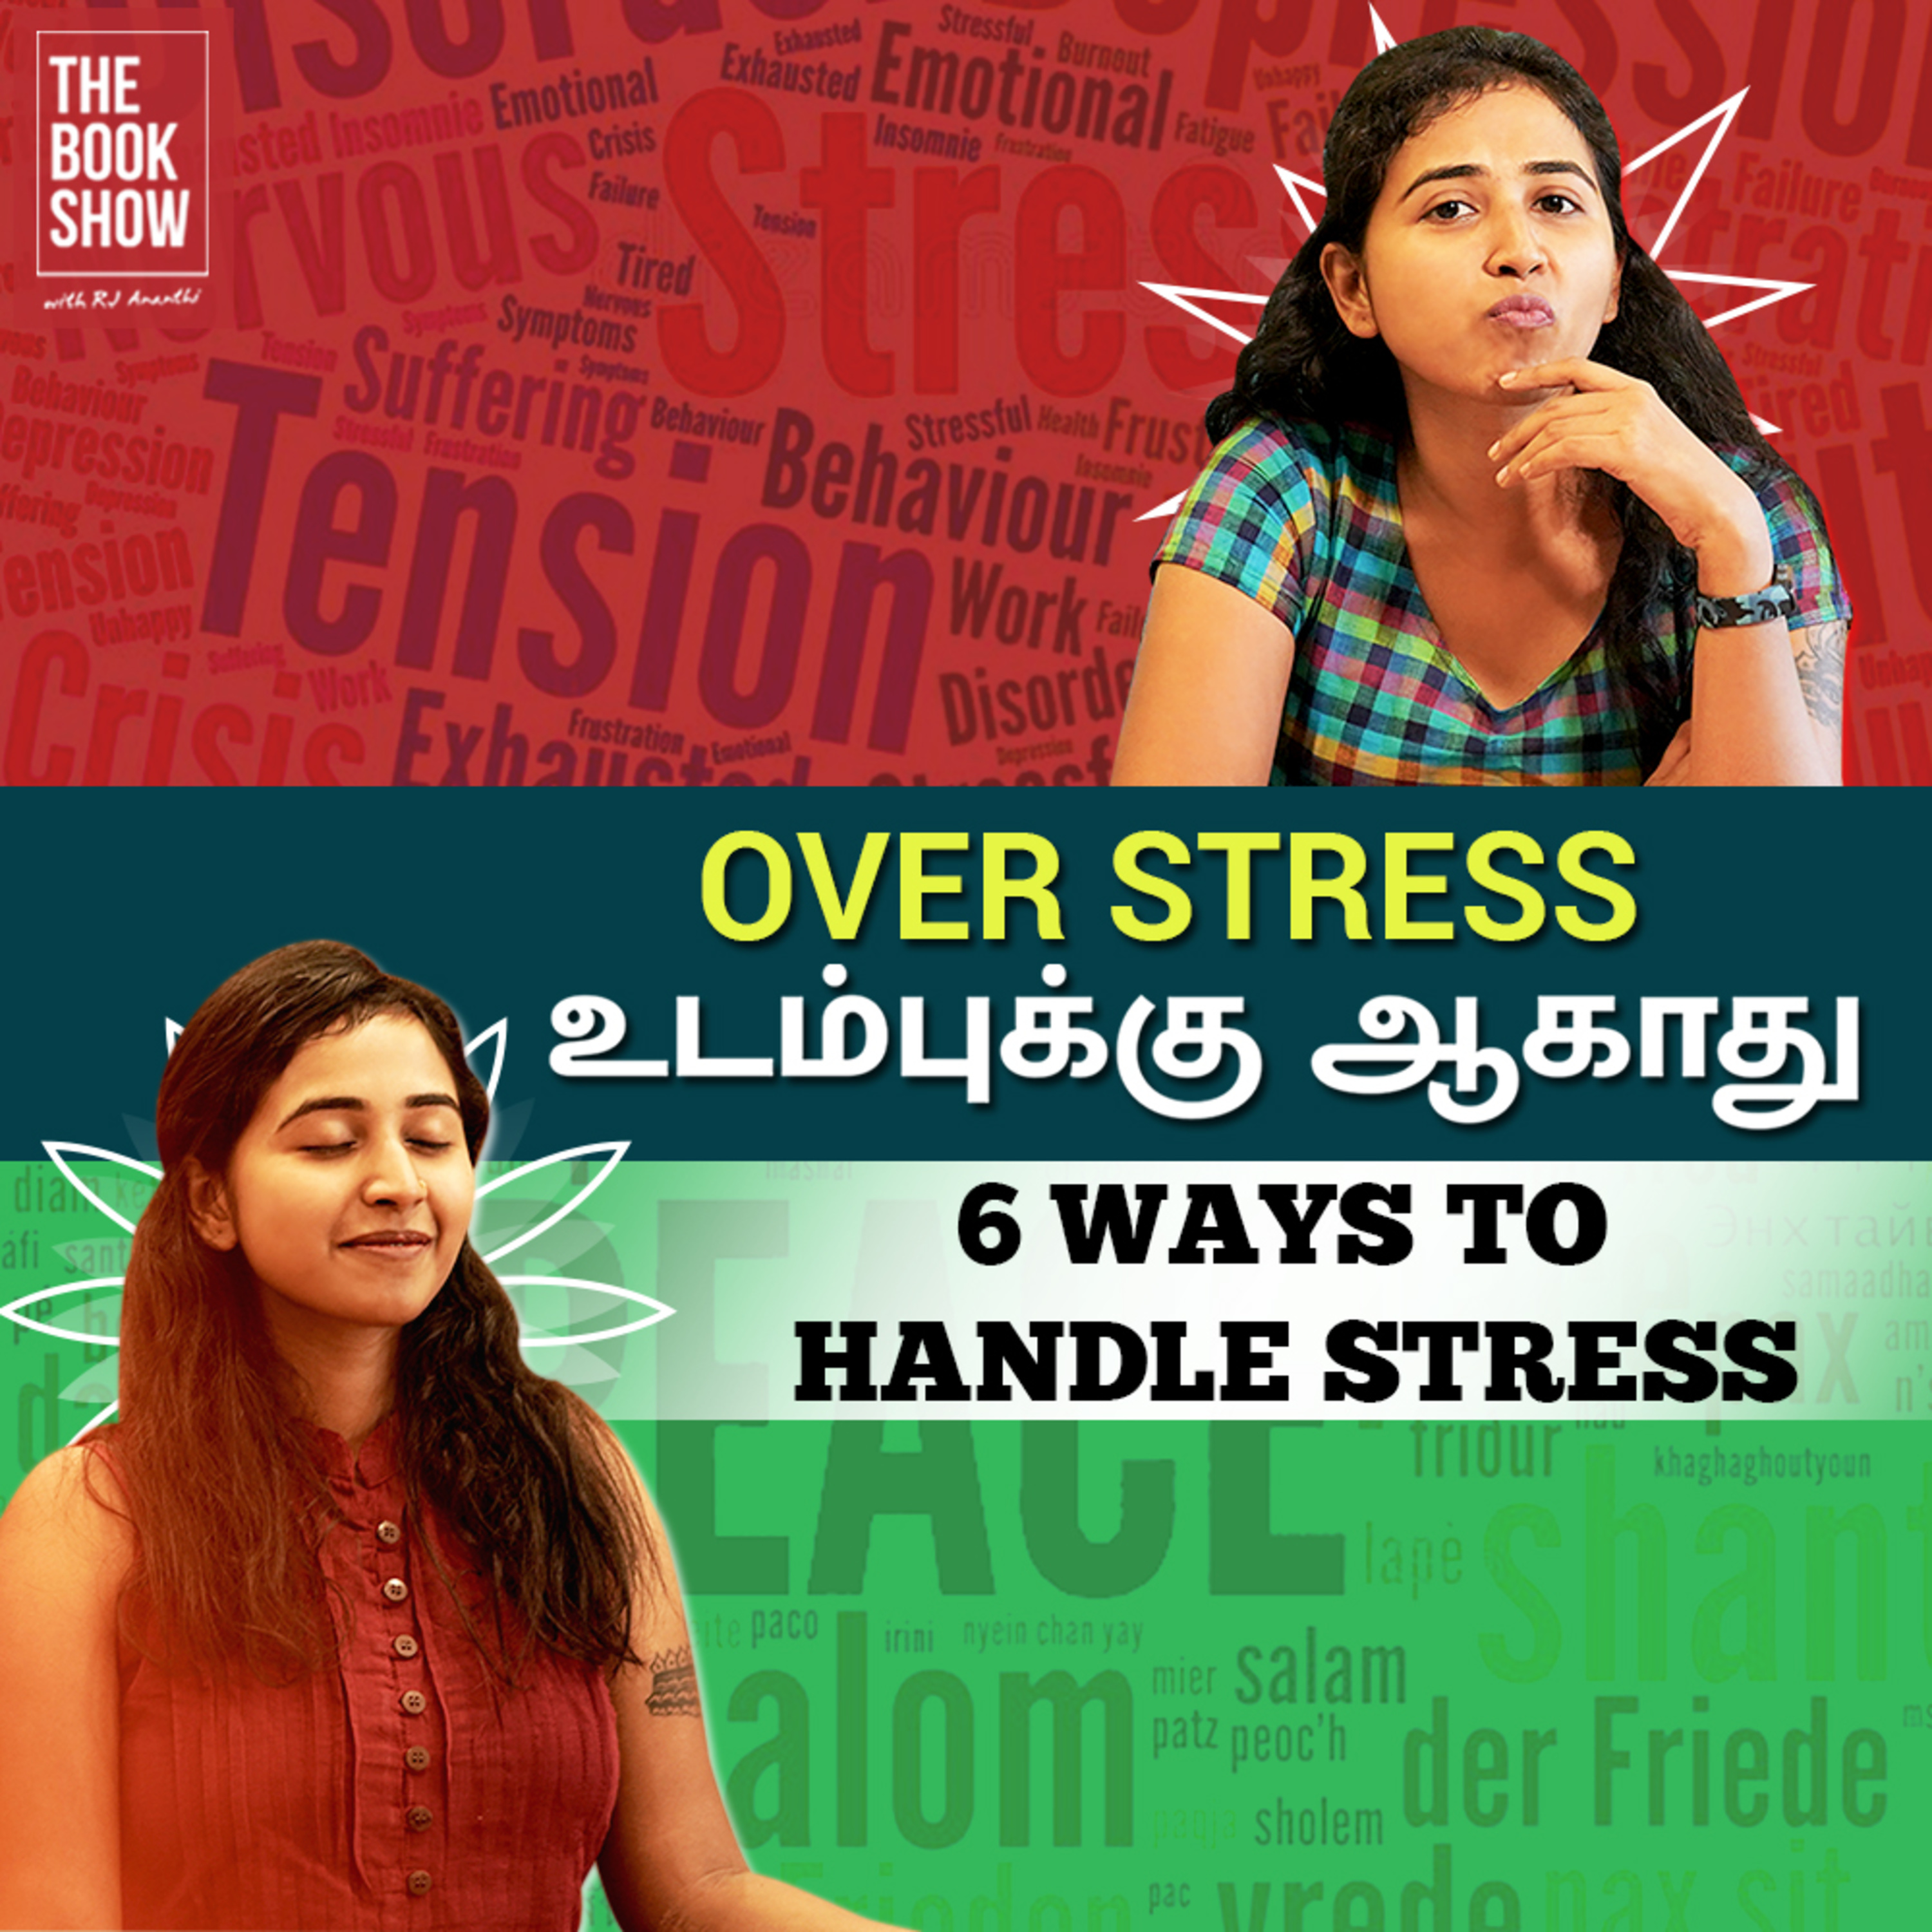 6 Effective Ways to Handle Stress   Bookmark ft. RJ Ananthi   The Book Show